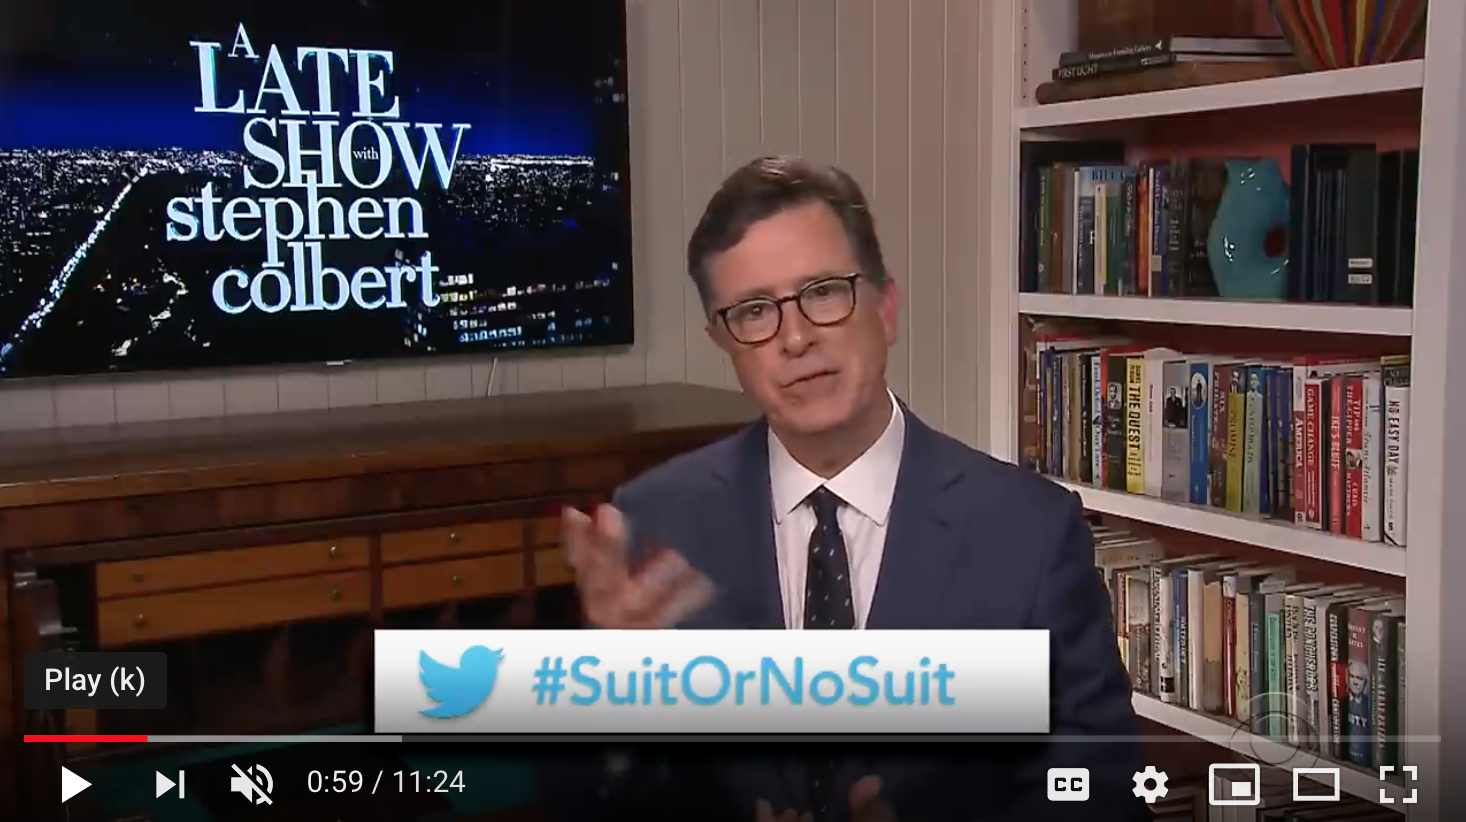 Stephen Colbert becomes a mere mortal. One of us.